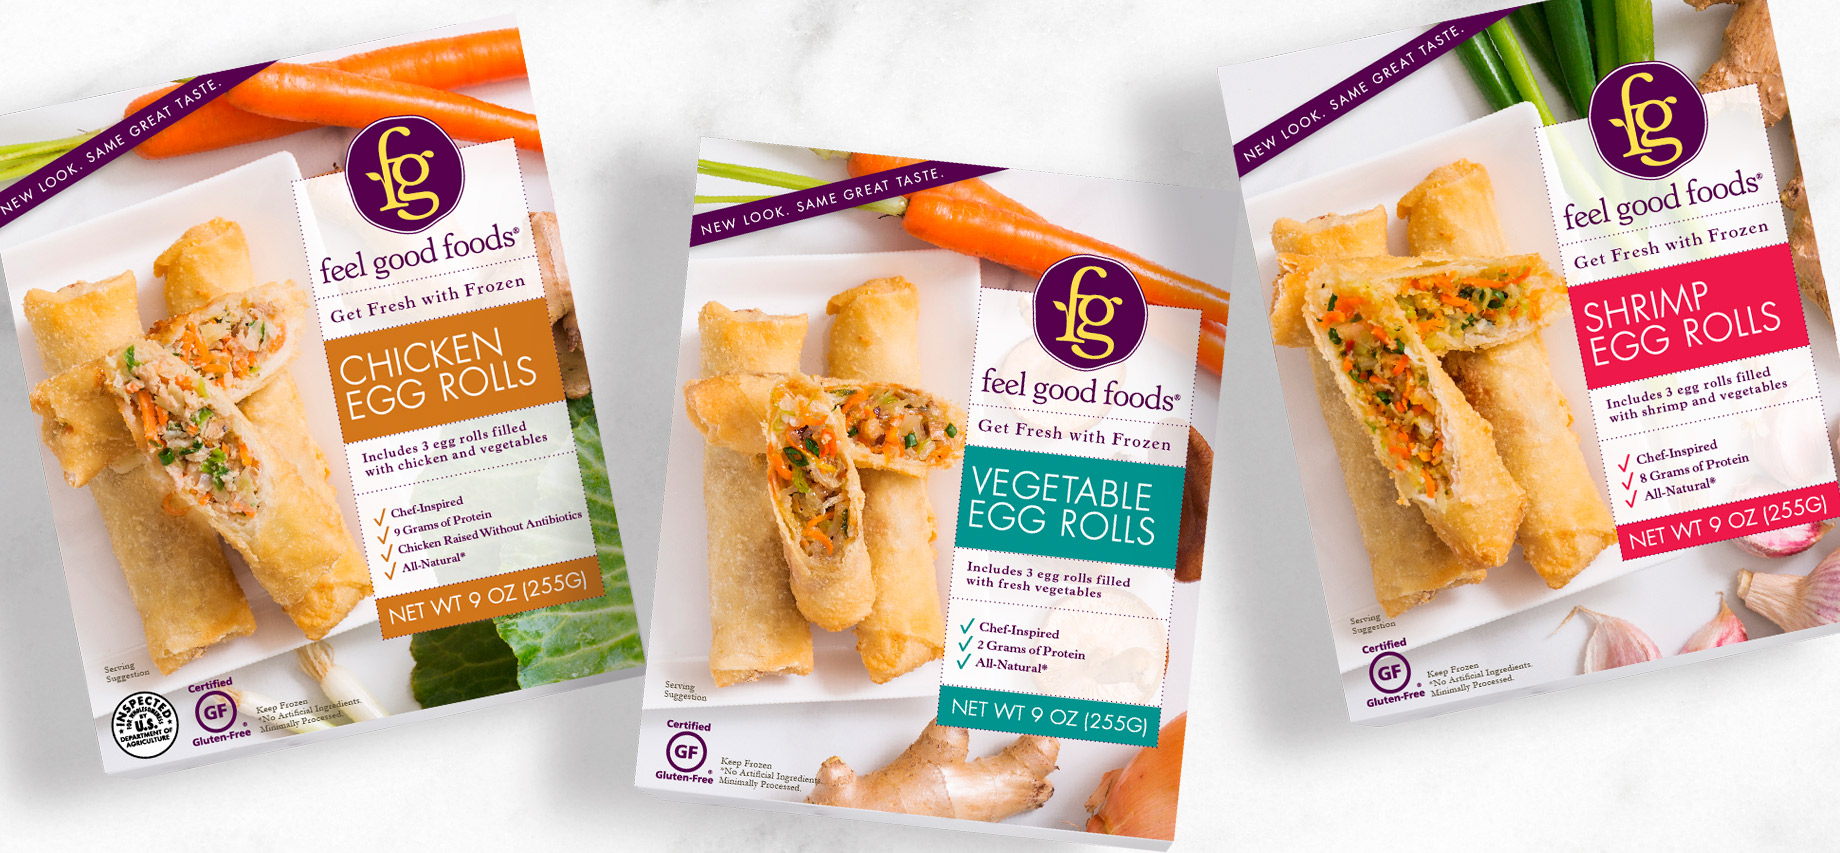 Feel Good Foods Eggrolls